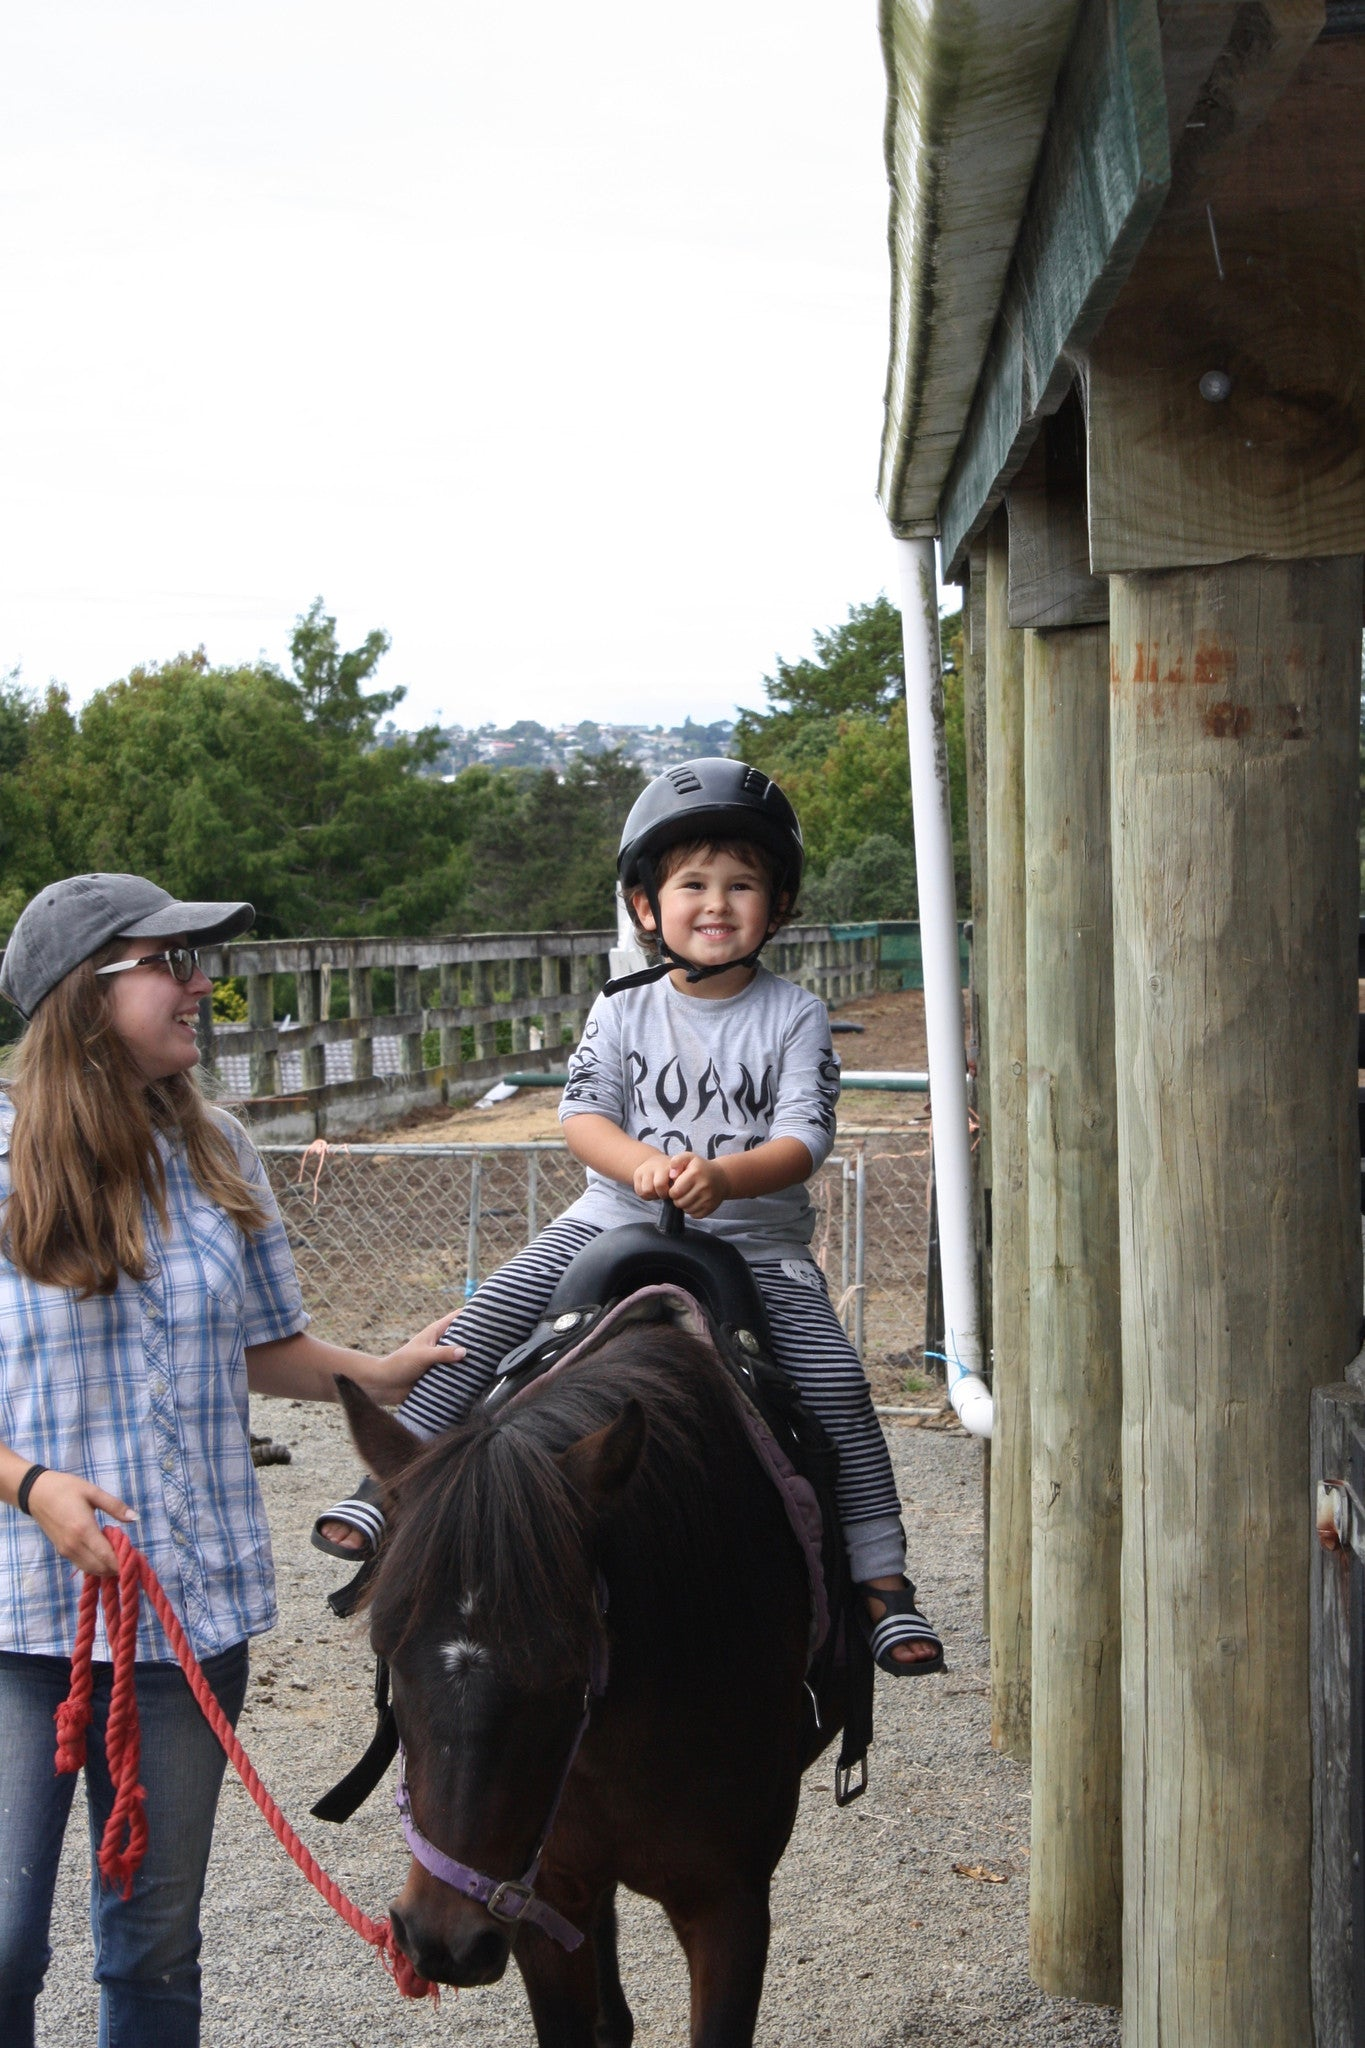 Kids Horse Rides at Kiwi Valley Farm, Things to do with Kids in Auckland, New Zealand. NZ Farm experience, Pop Factory Kids Clothing